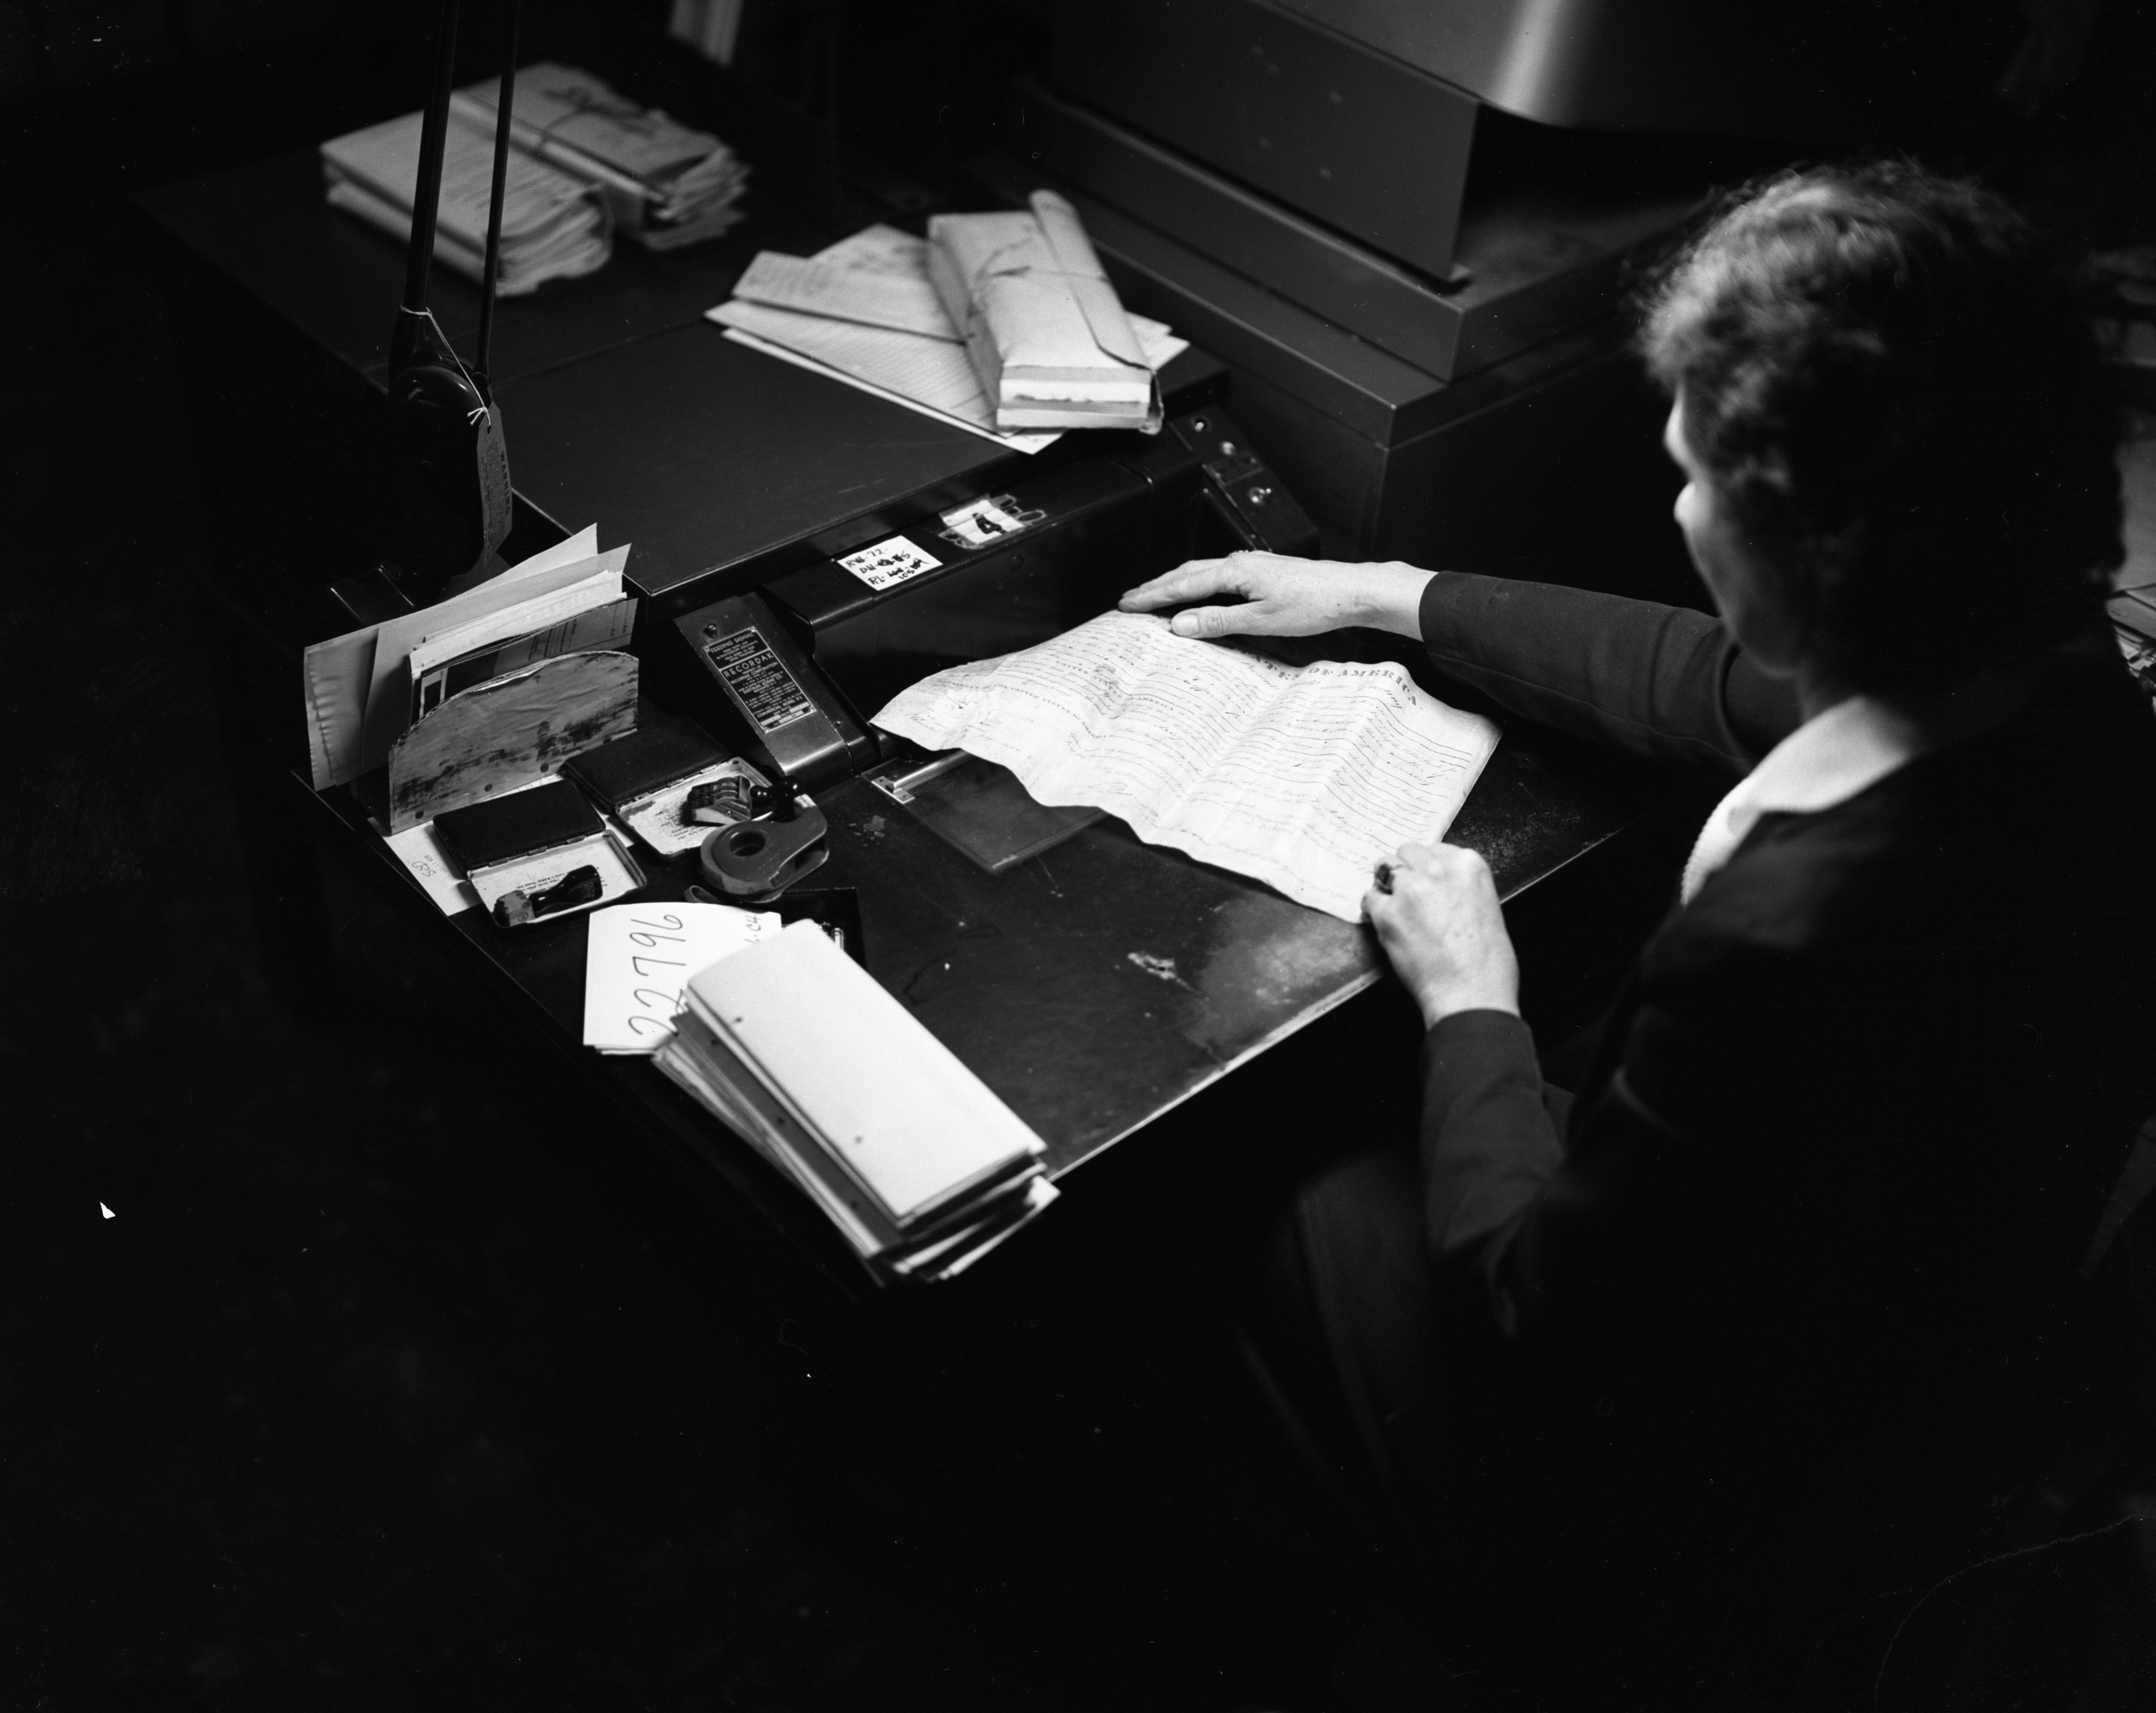 Helen A. Rice microfilms old documents on sheepskin discovered at the Courthouse, February 1955 image